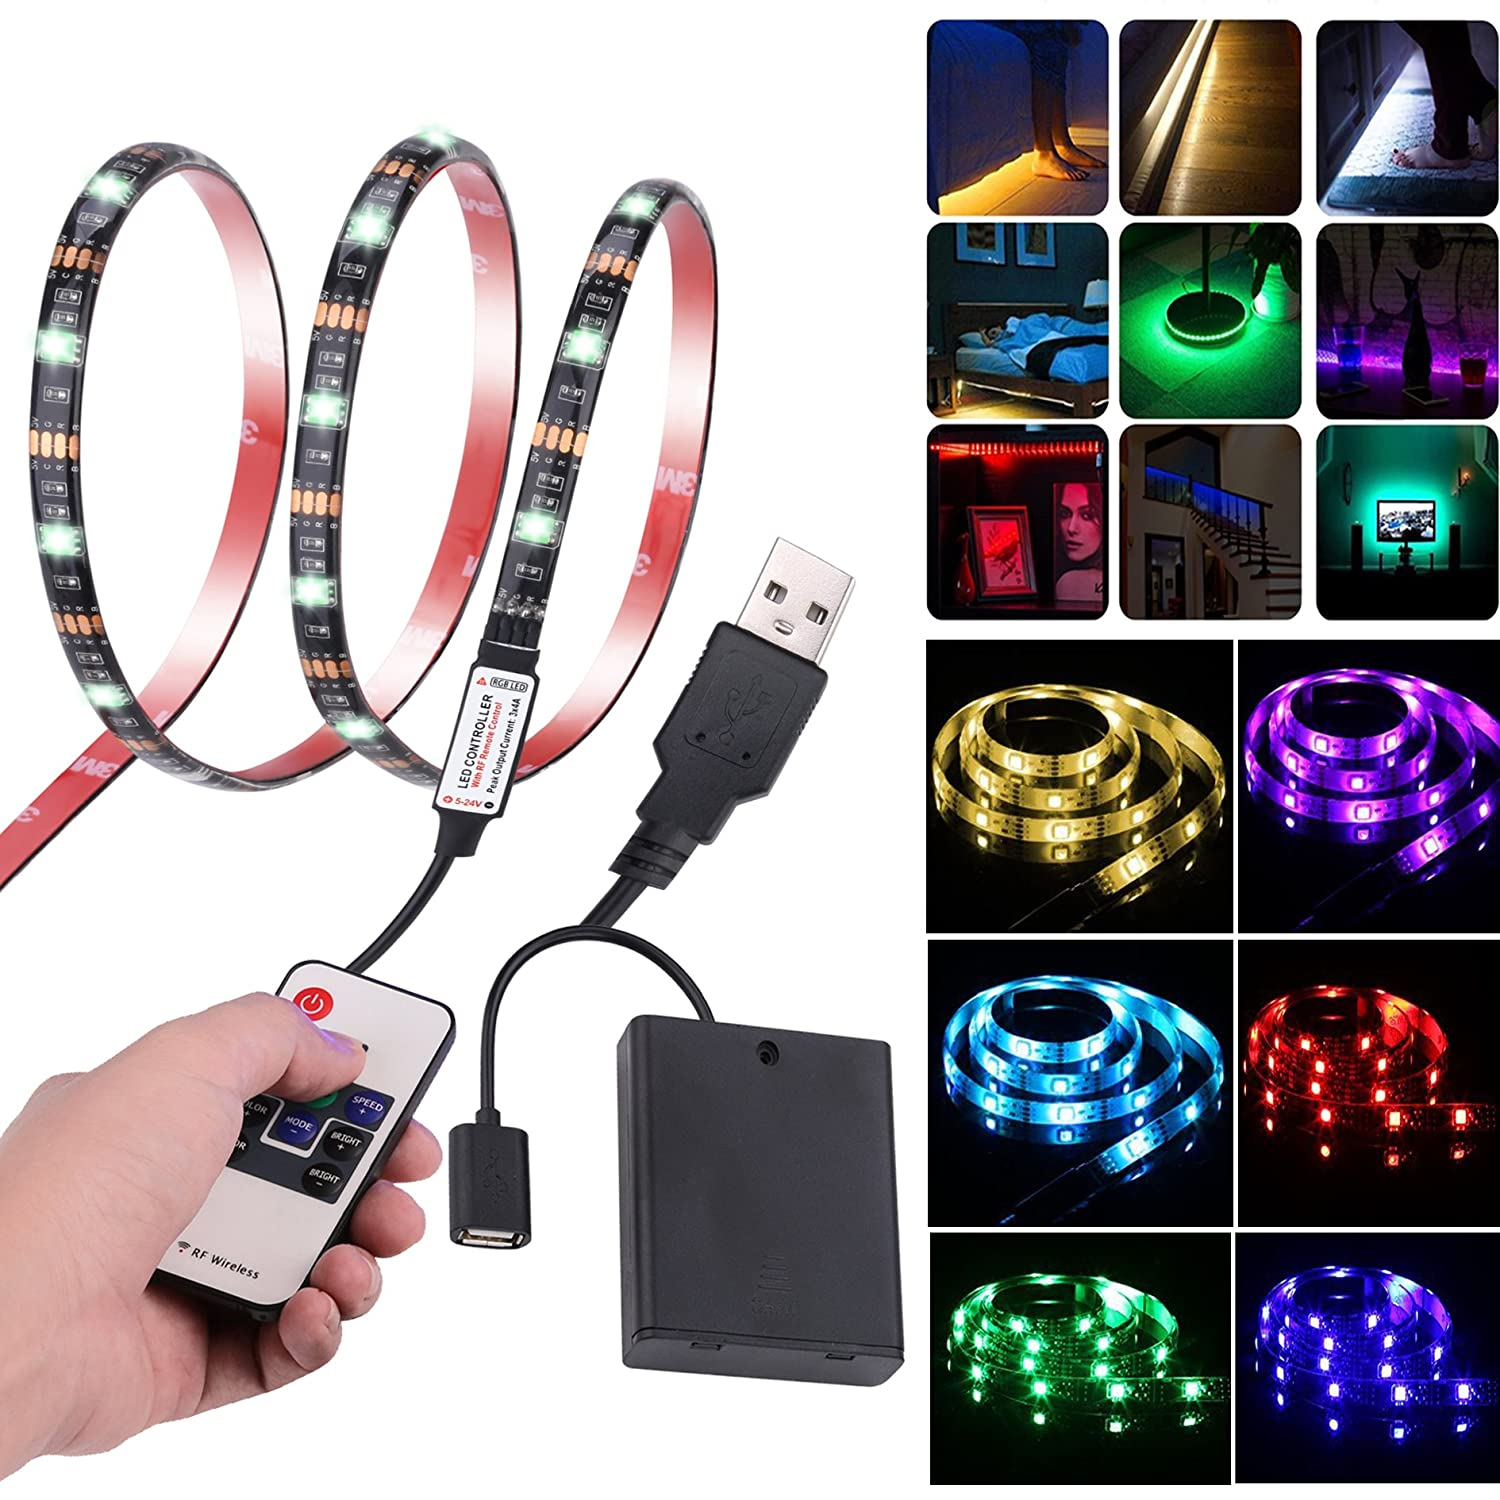 Amazoncom Leimaq Usb Battery Powered Rgb Led Light Strip With Rf